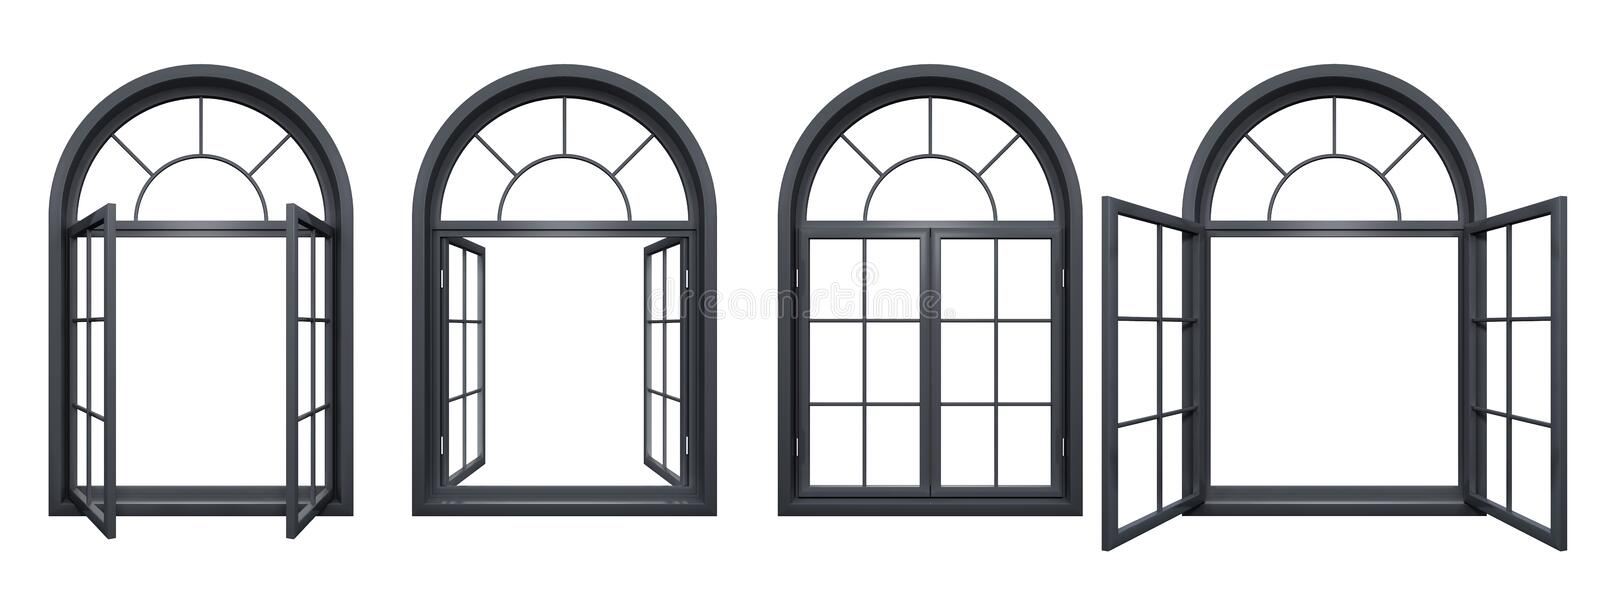 Collection of black arched windows isolated on white. Collection of black arched windows, isolated on white stock illustration